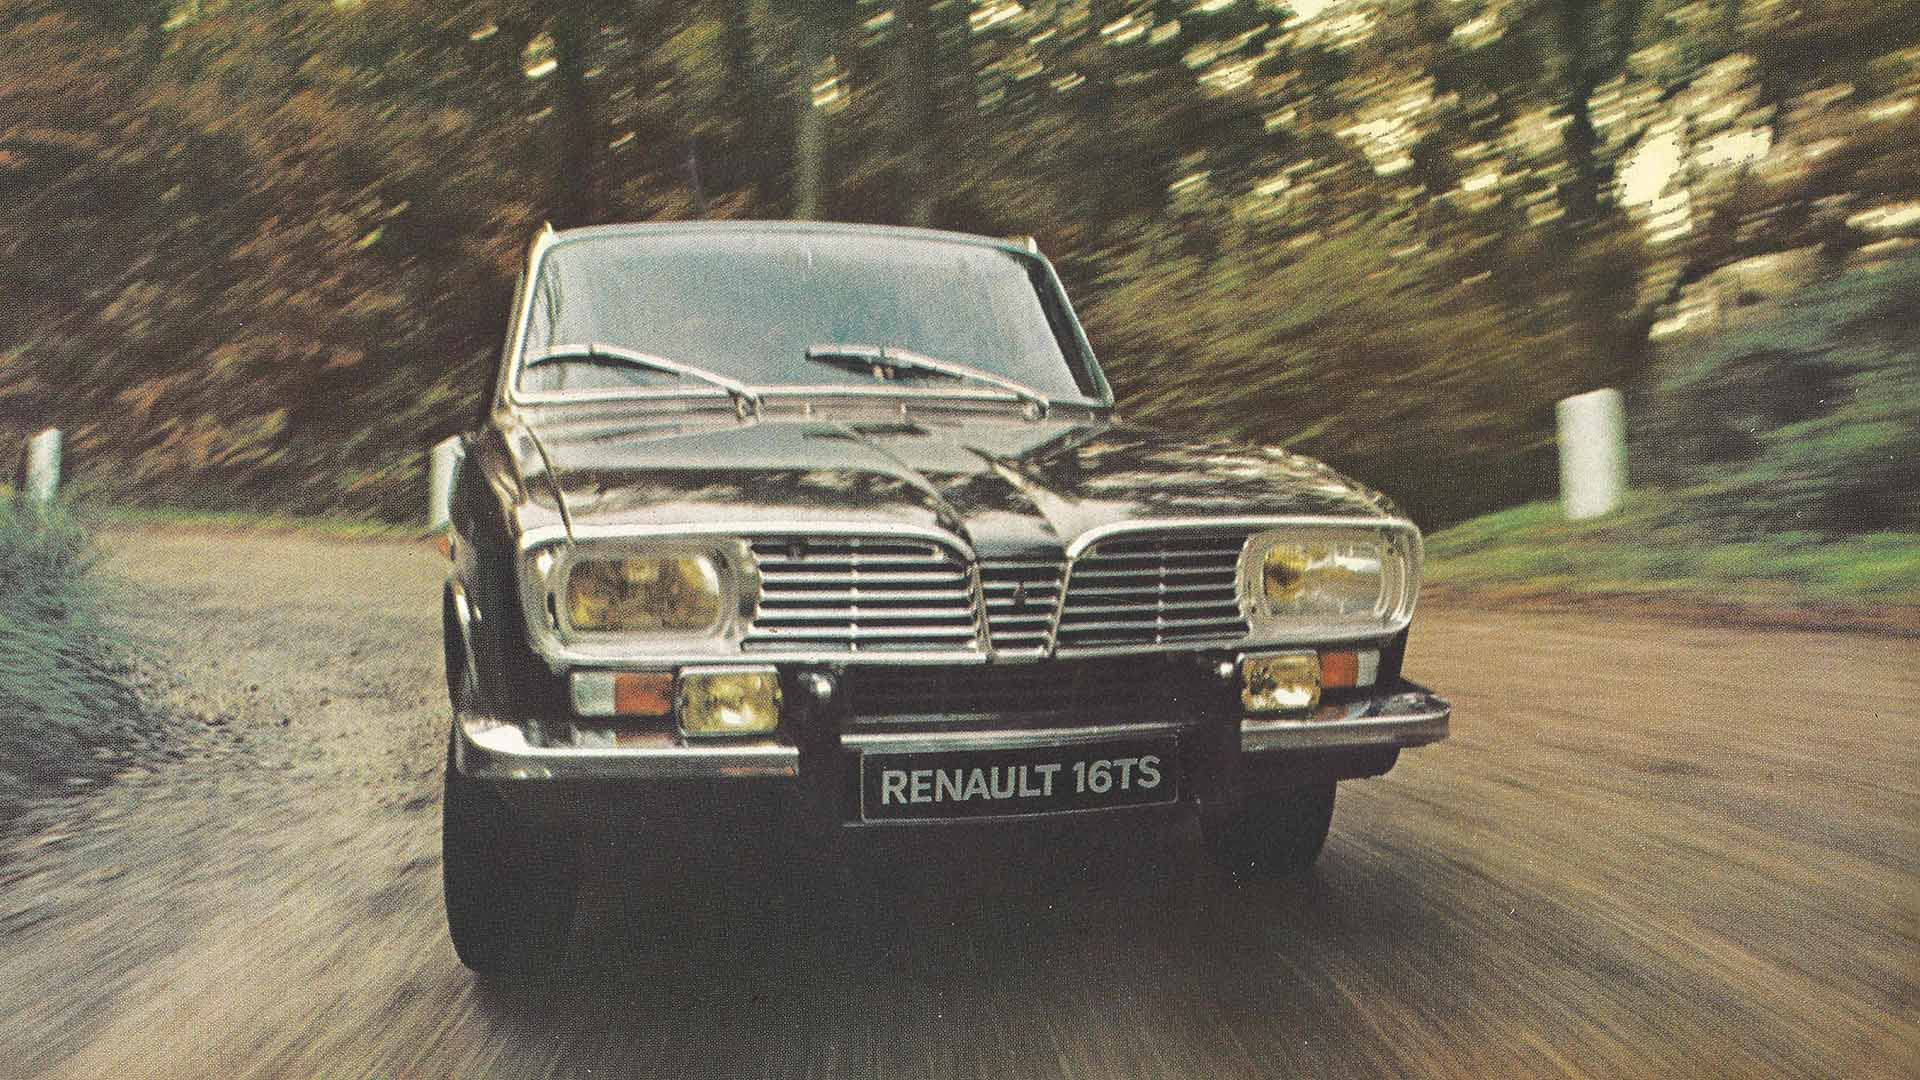 Renault 16 TS on the road